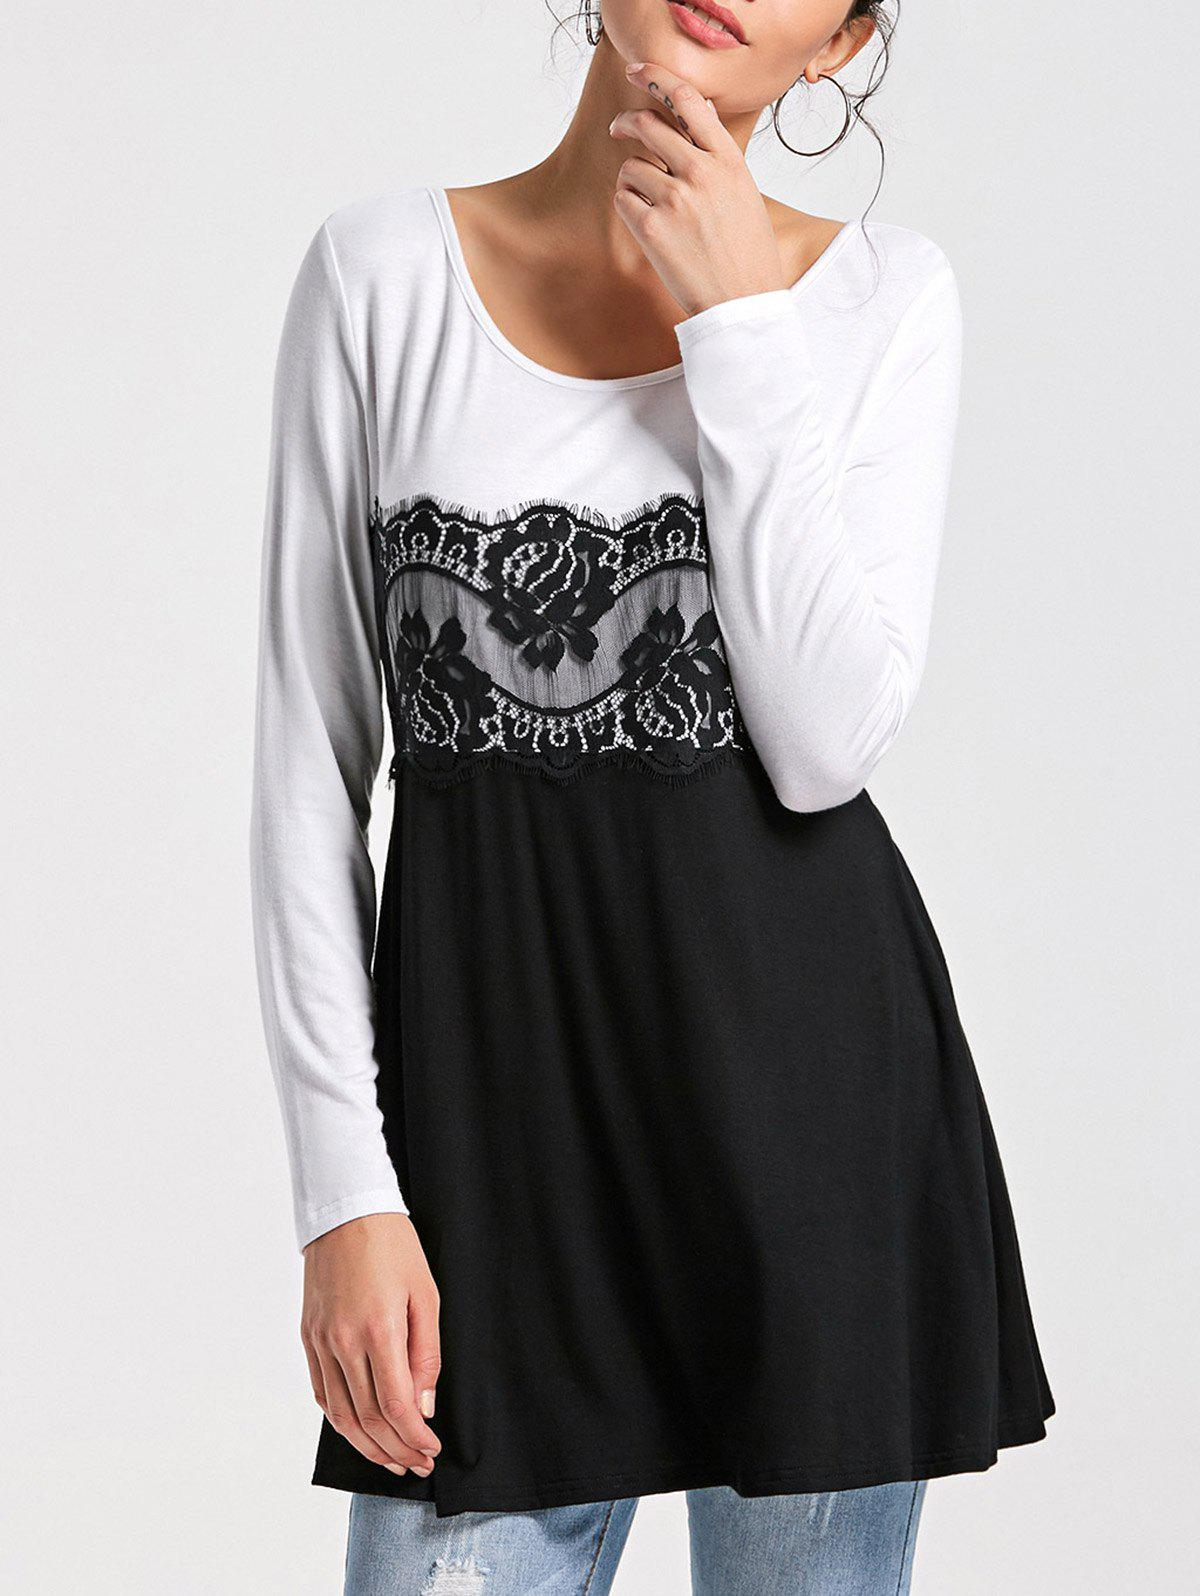 Lace Panel Long Sleeve Tunic Top - WHITE/BLACK L